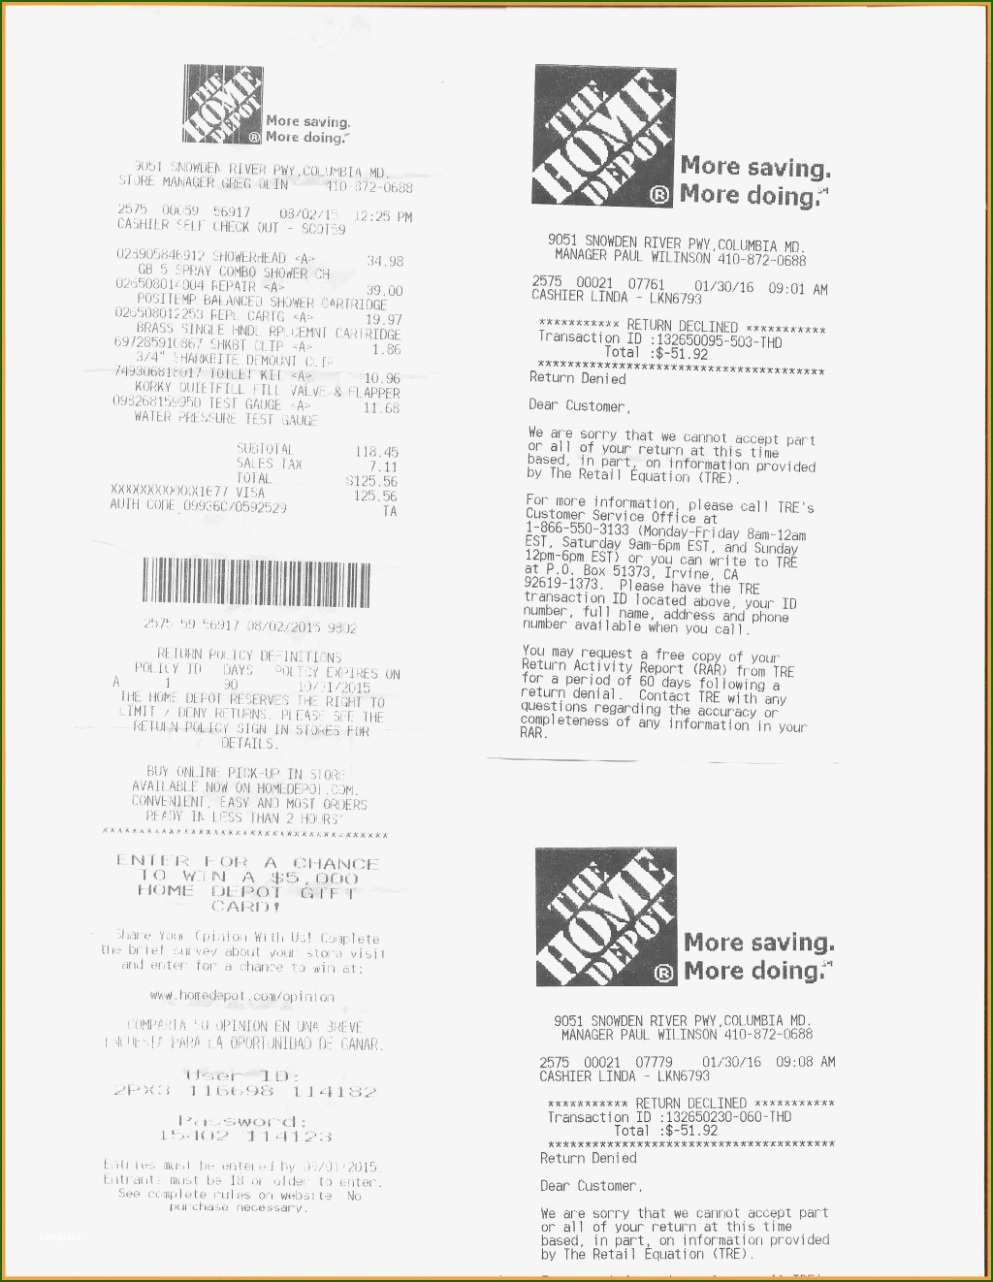 Terrific Home Depot Receipt Template Of 2020 In 2020 Receipt Template Home Depot Templates